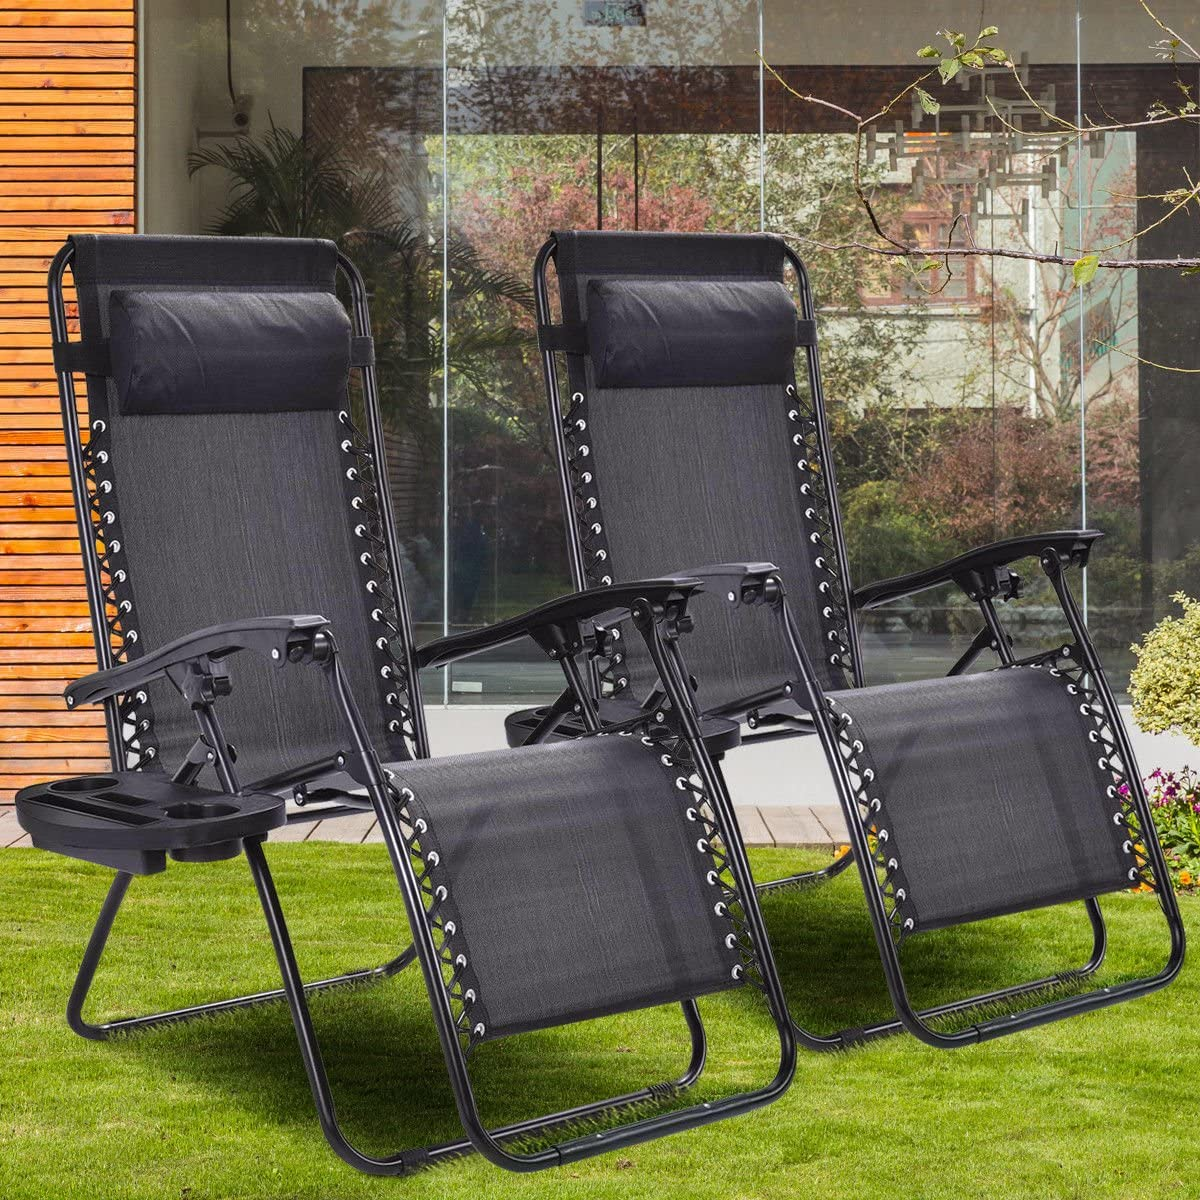 Giantex 2 PCS Zero Gravity Chair Patio Chaise Lounge Chairs Outdoor Yard Pool Recliner Folding Lounge Chair with Cup Holder Black